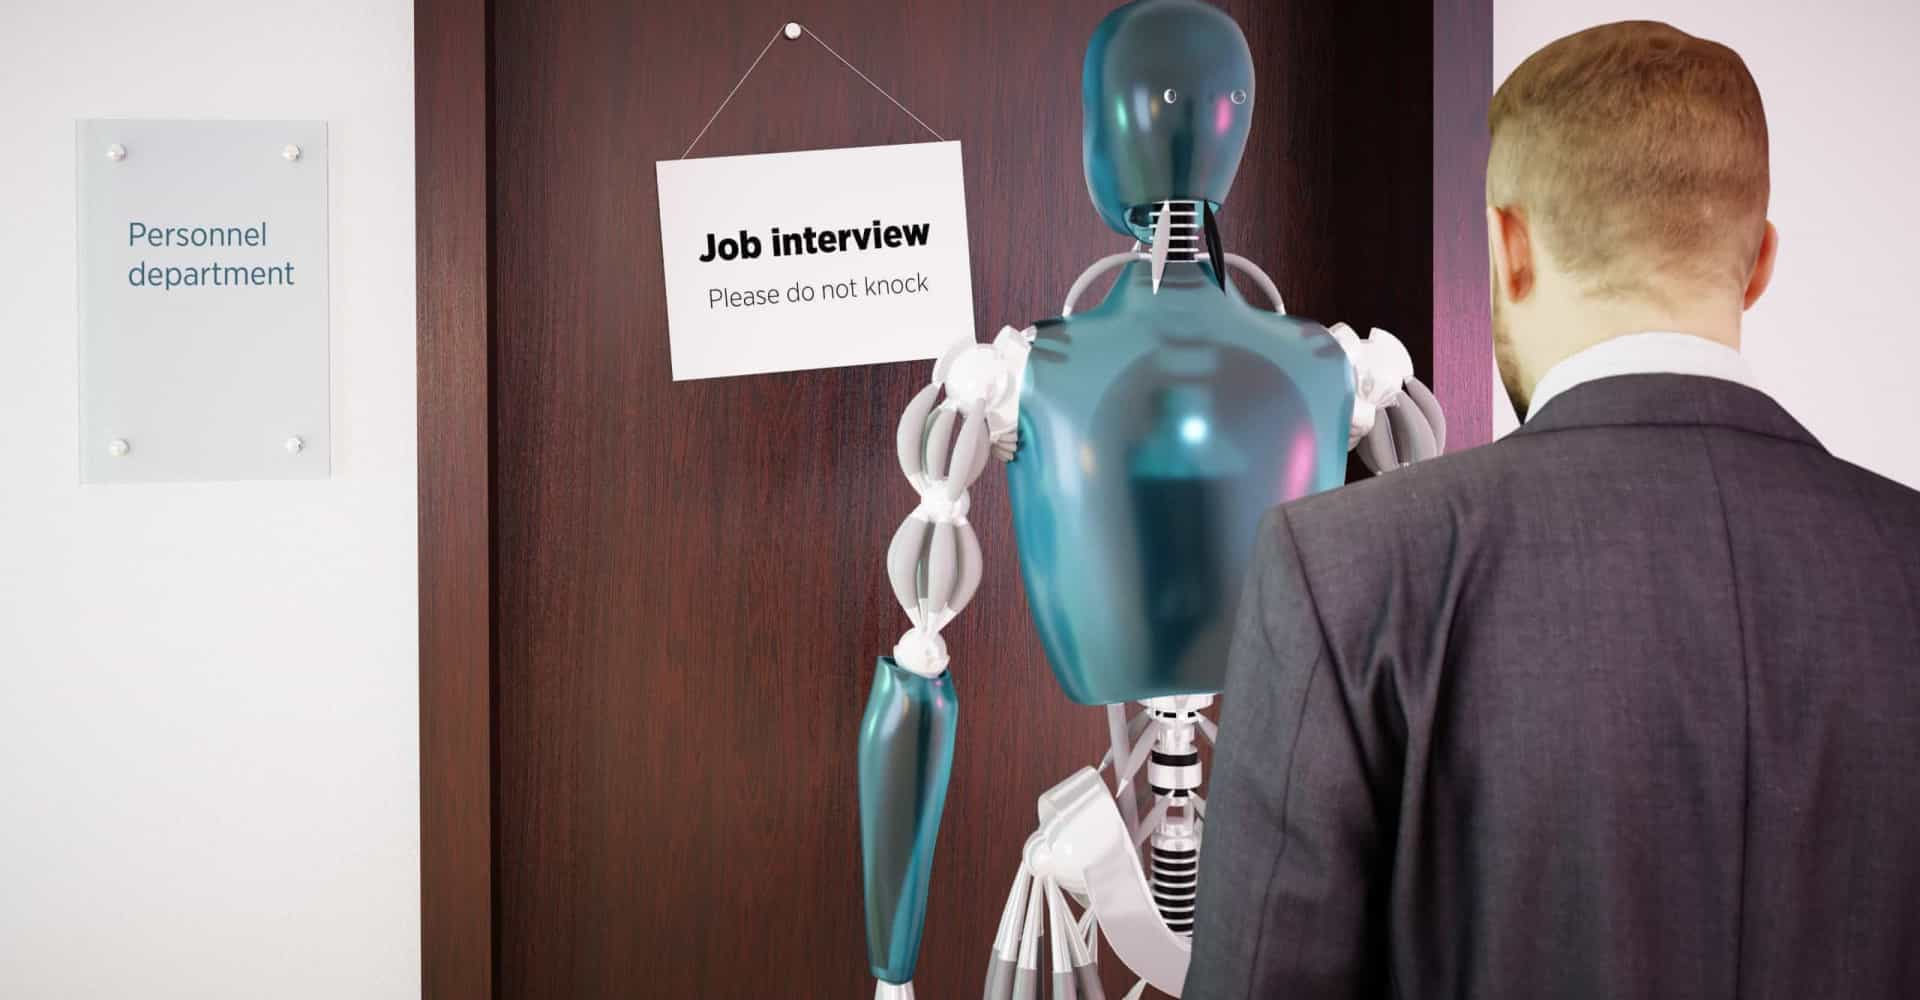 Jobs that will (and won't) survive the robot invasion